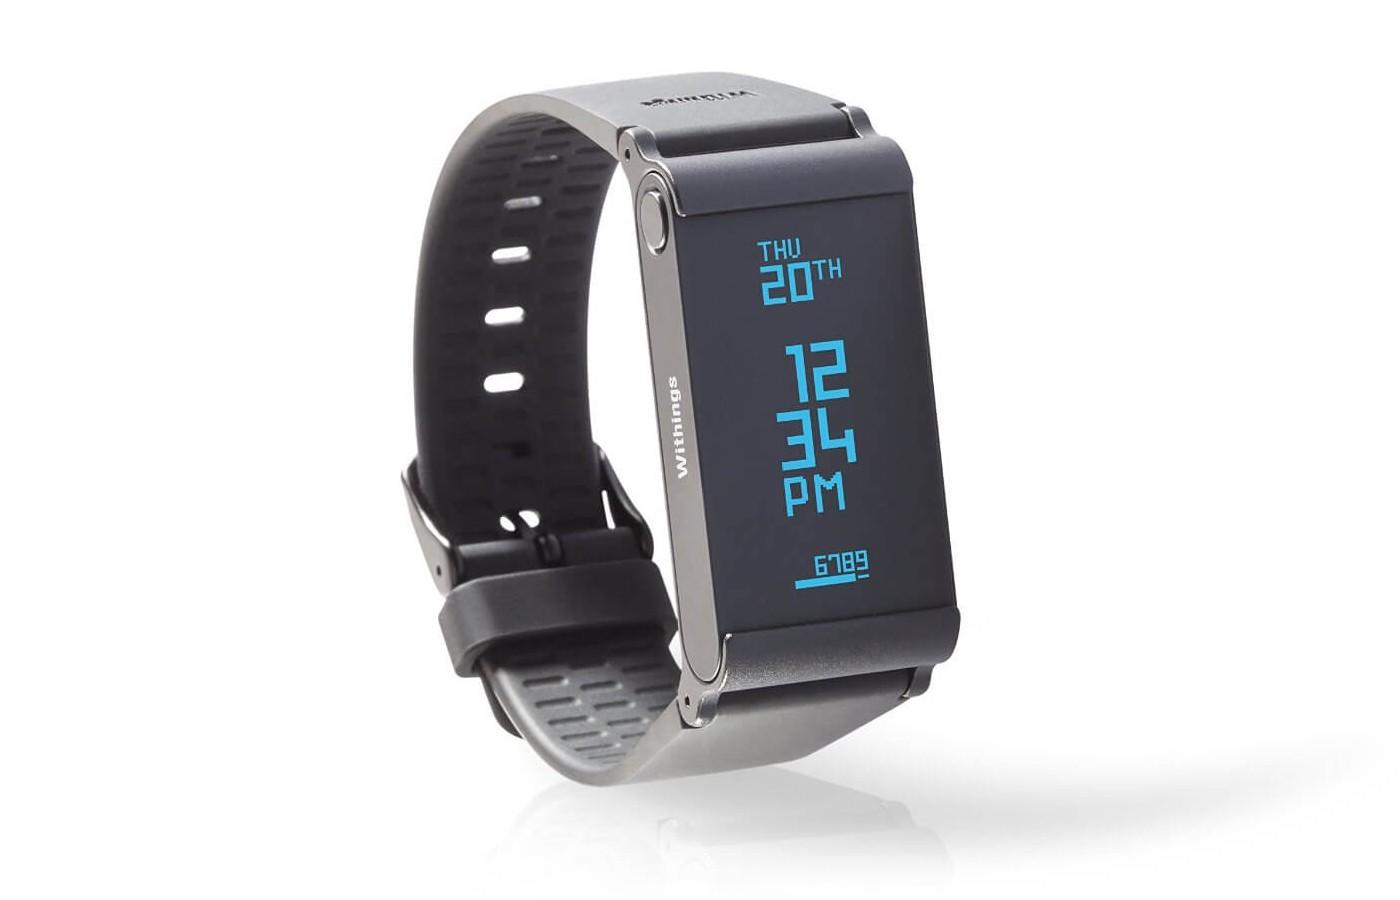 It features a heart rate monitor and also checks blood oxygen levels